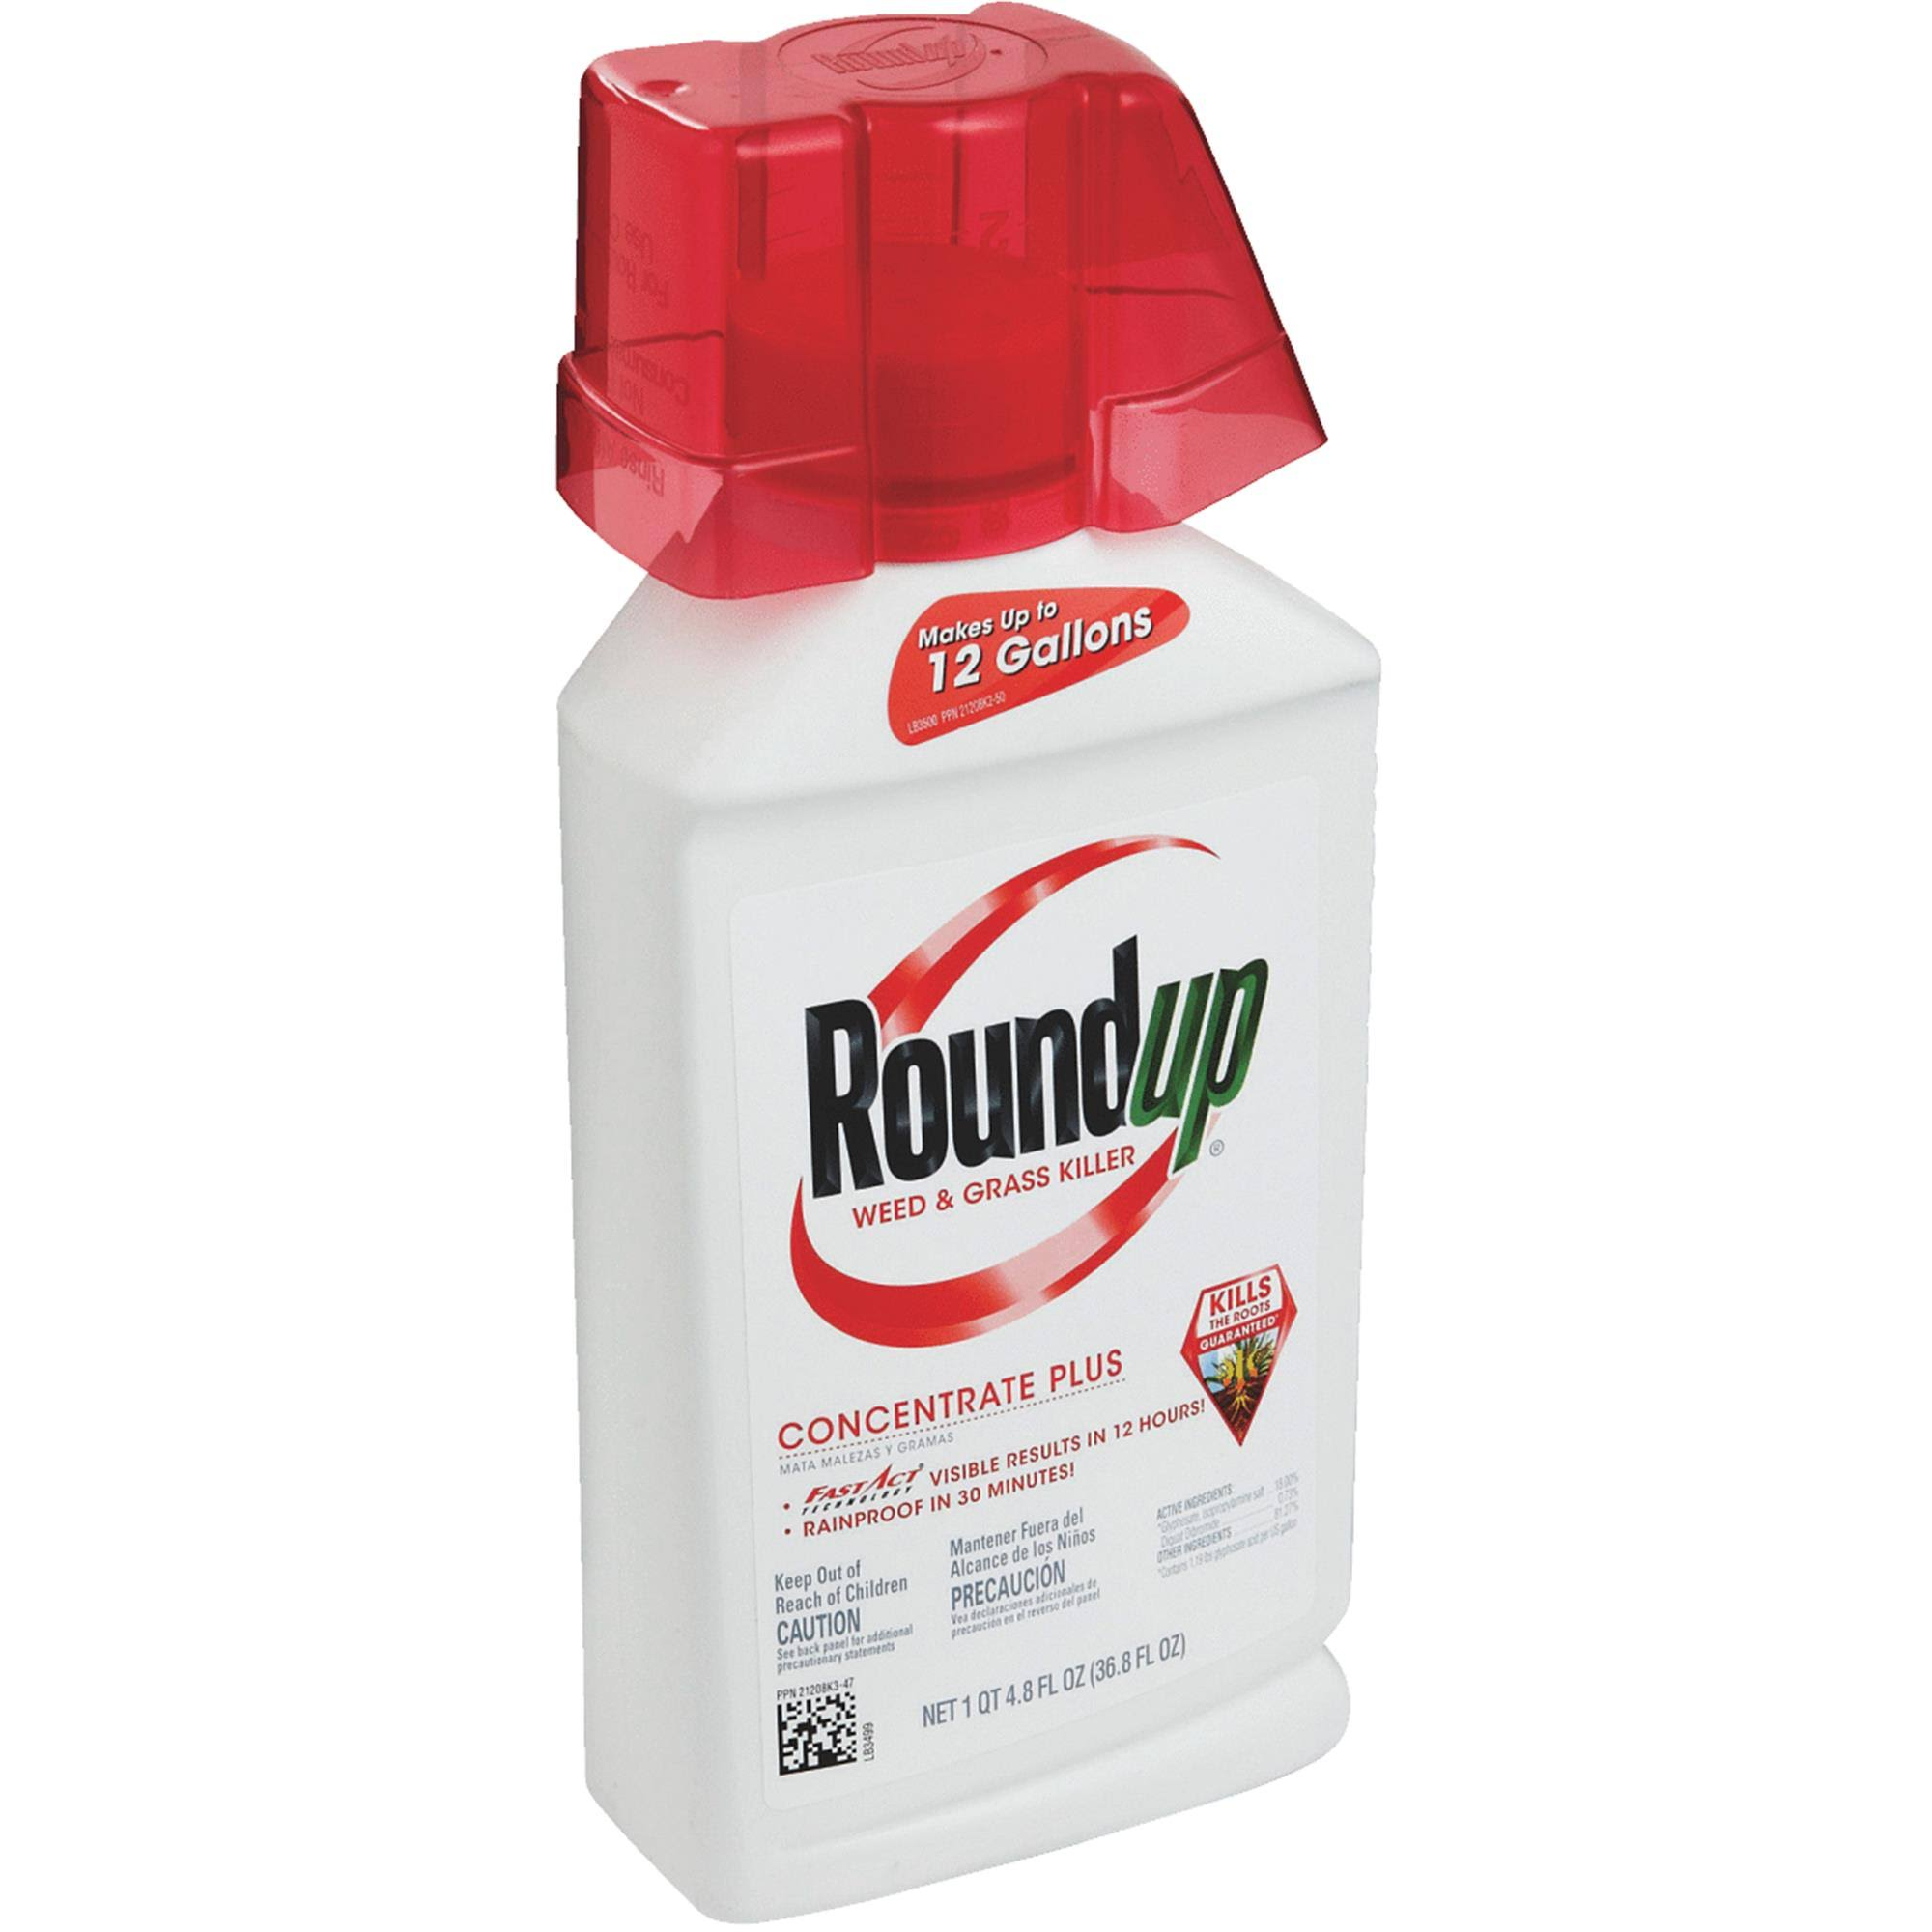 Roundup Weed and Grass Killer Concentrate - 36.8oz